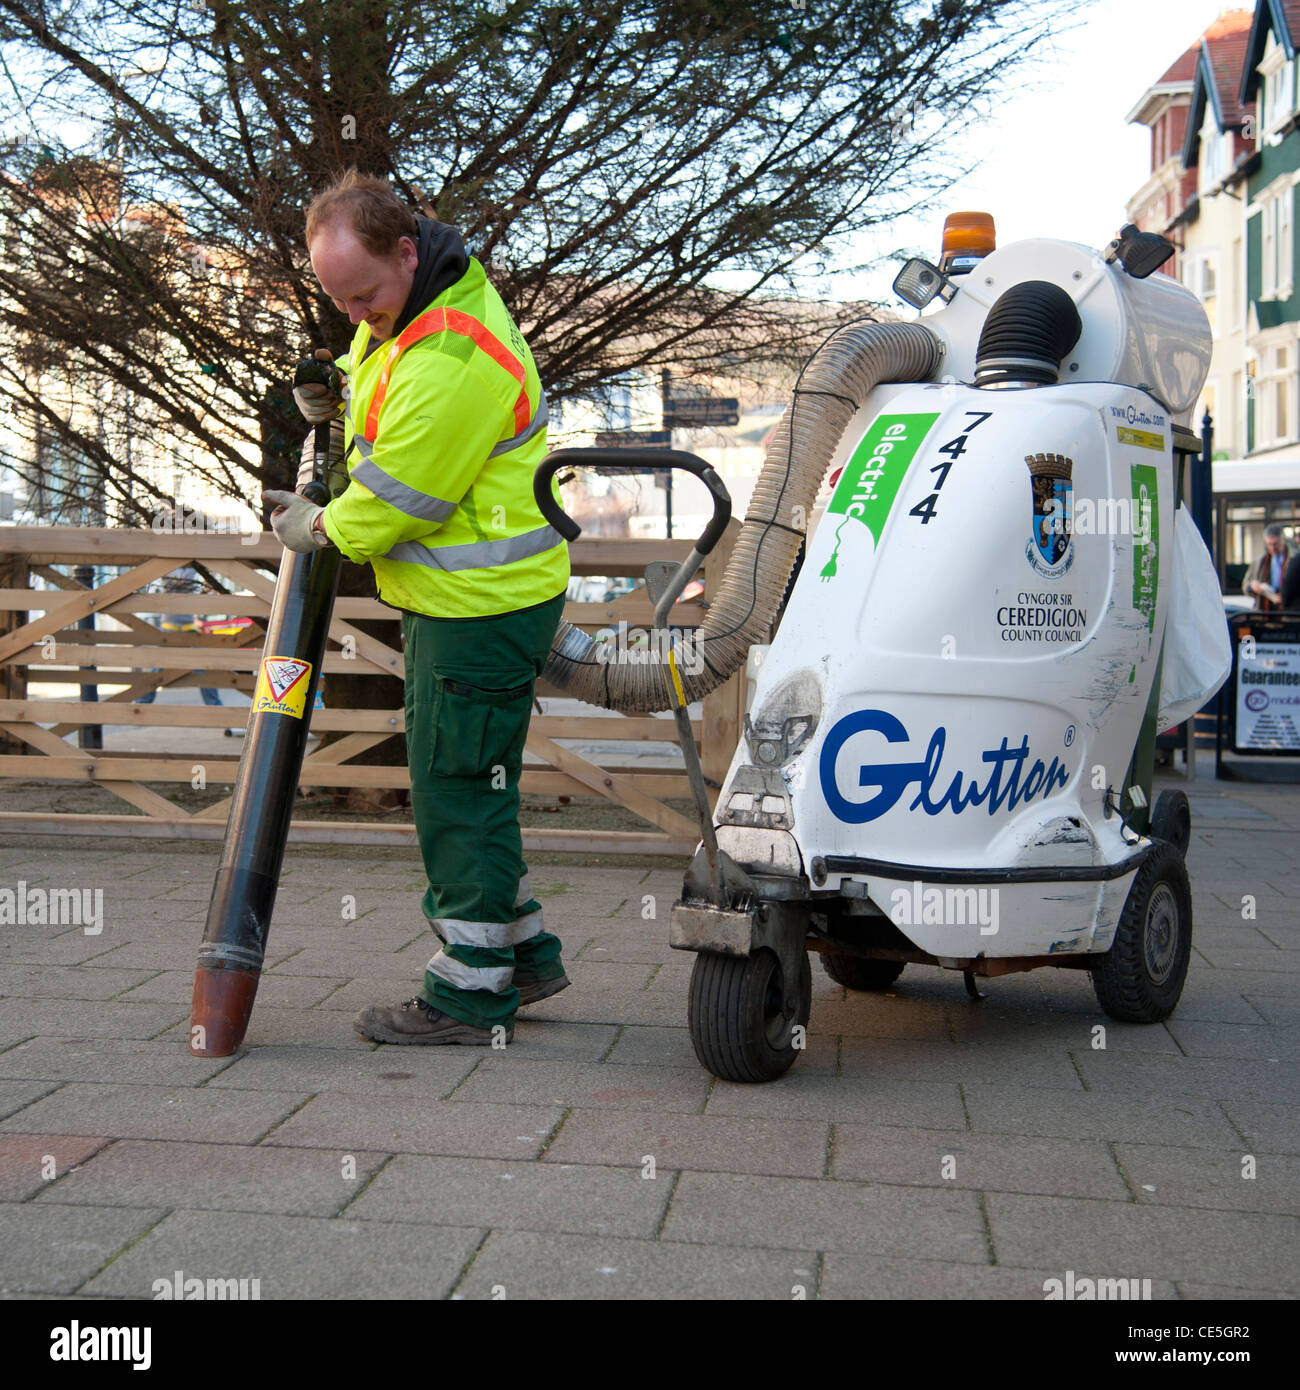 A local authority council worker using a Glutton electric industrial vacuum cleaner to pick up street litter, UK - Stock Image